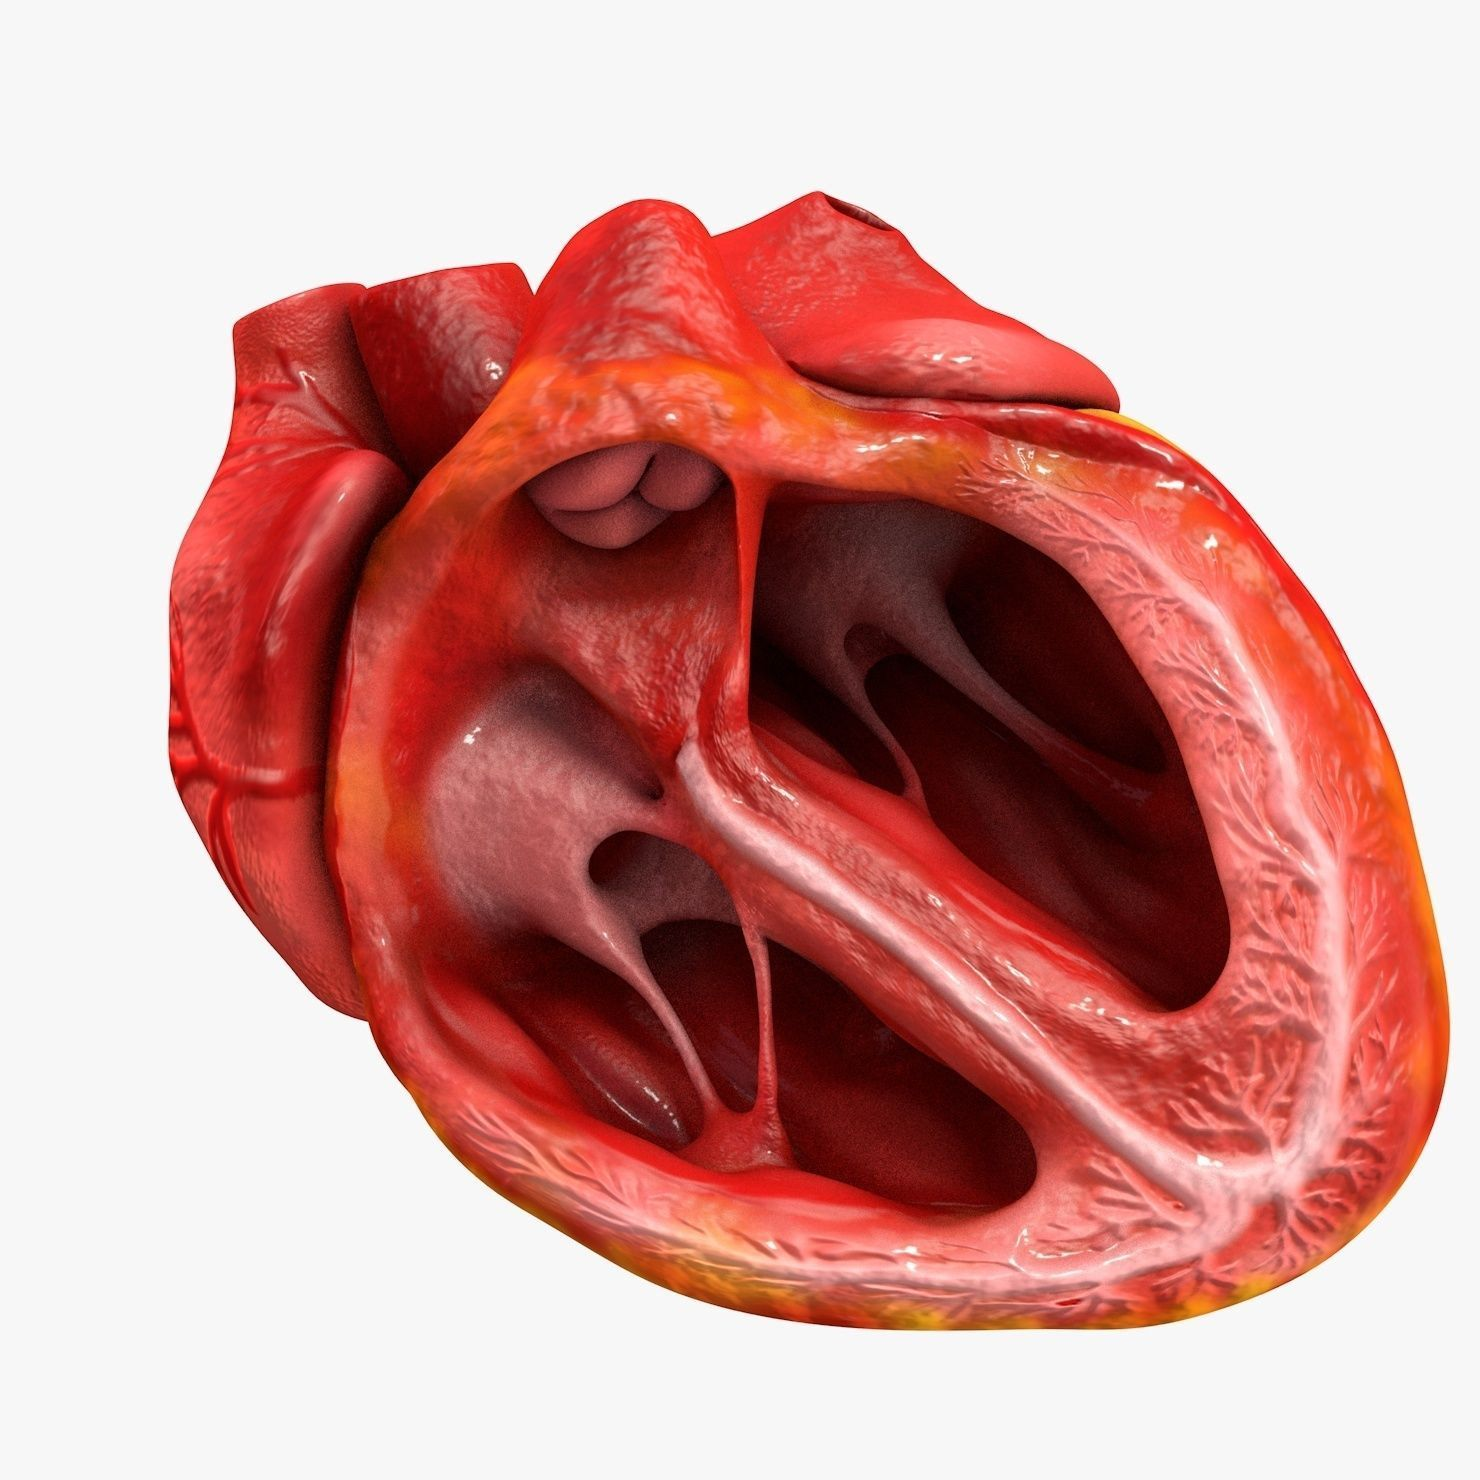 Animated human heart - photo#22